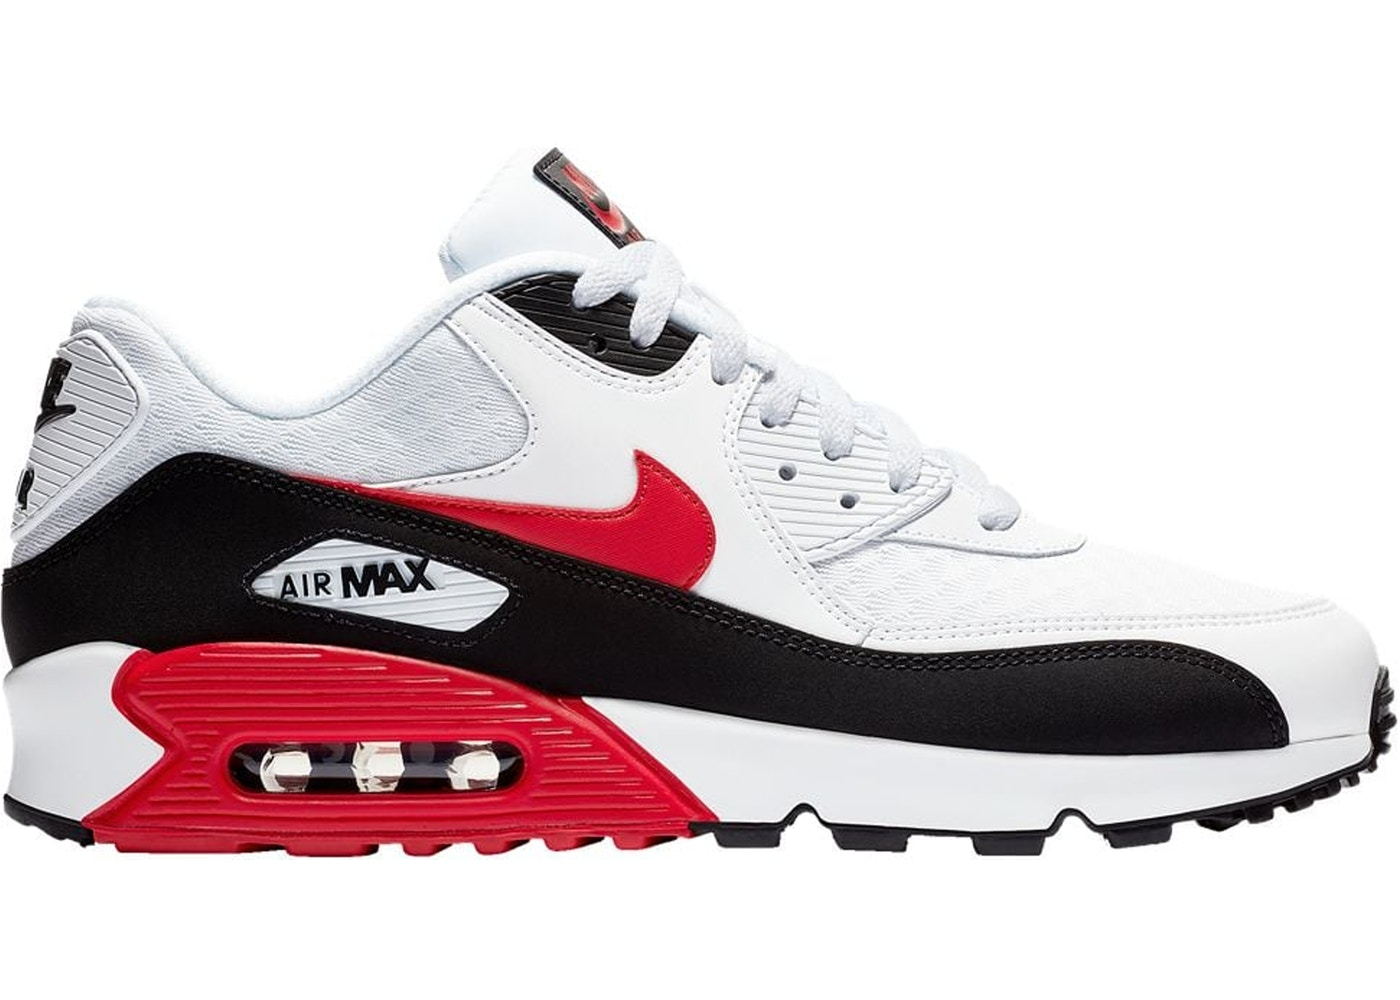 separation shoes 045a9 2f4cf Air Max 90 White University Red Black - BV2522-100